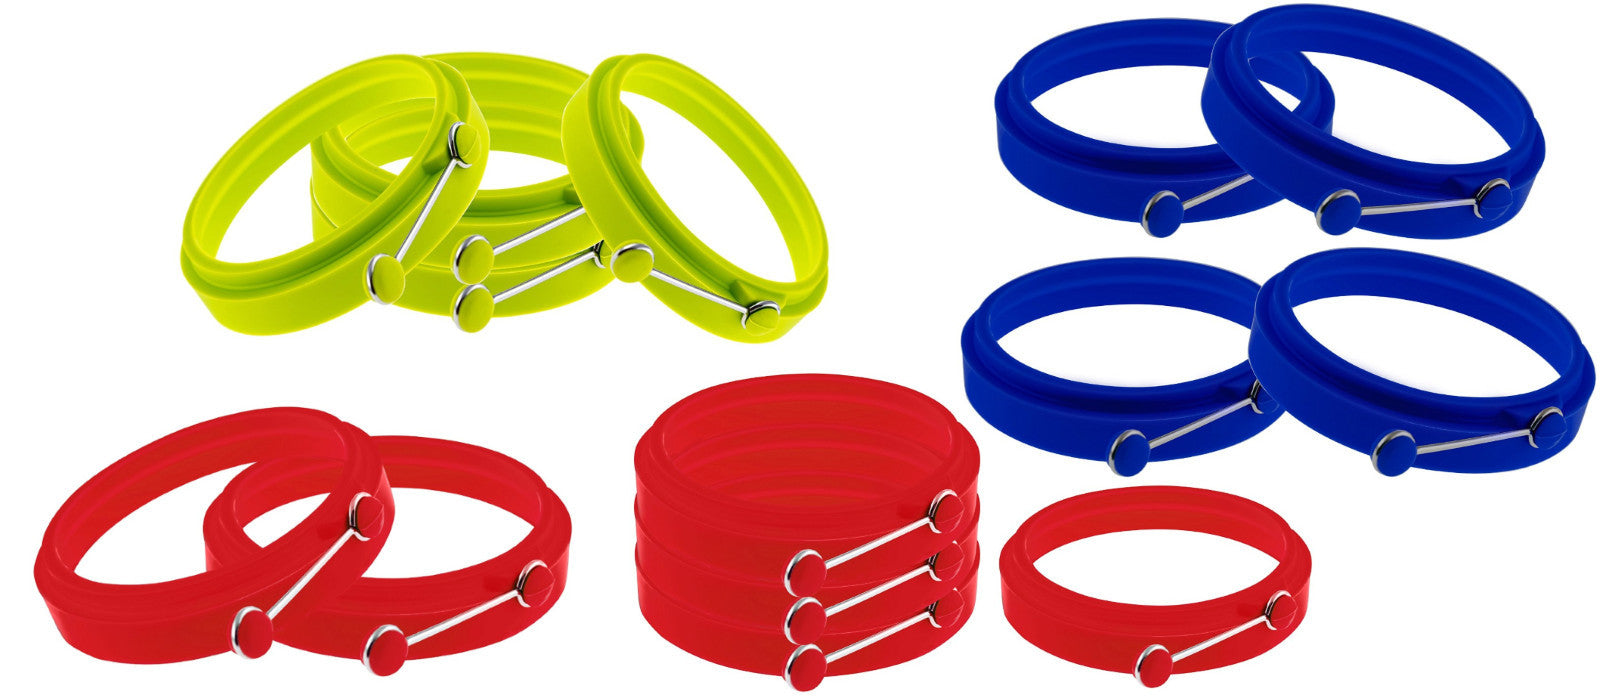 YumYum Utensils Silicone Egg Rings